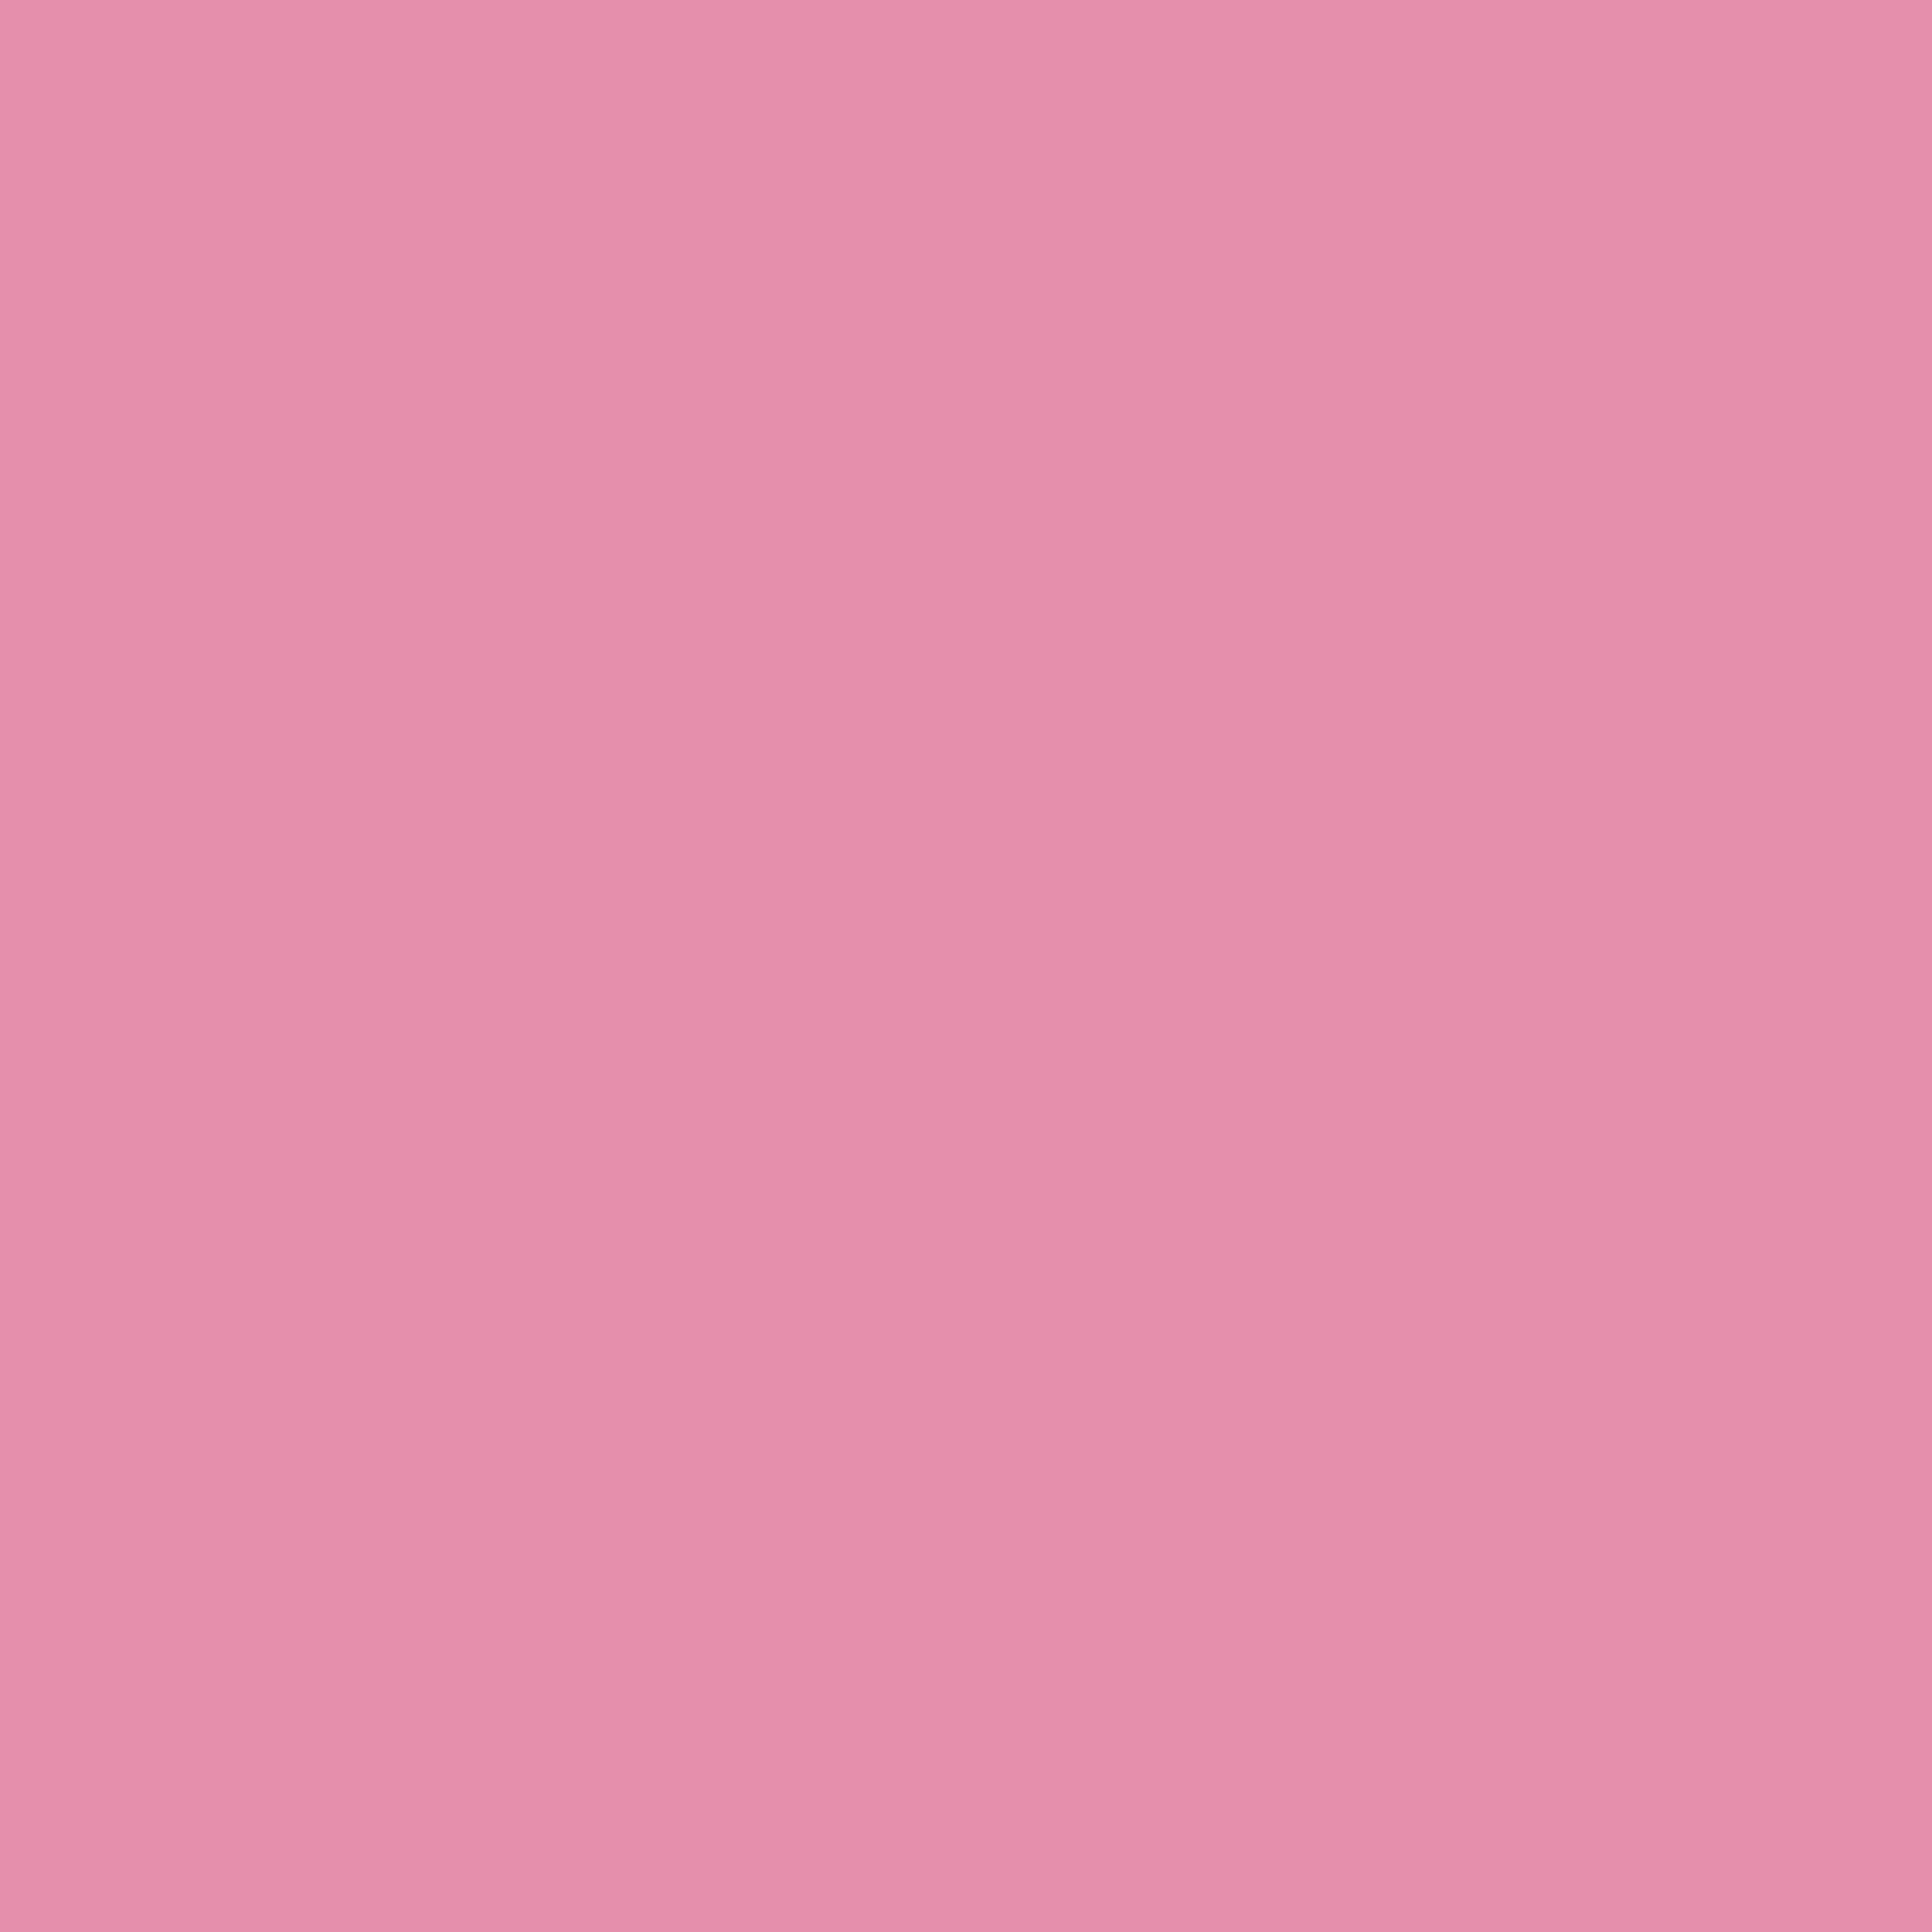 2732x2732 Charm Pink Solid Color Background